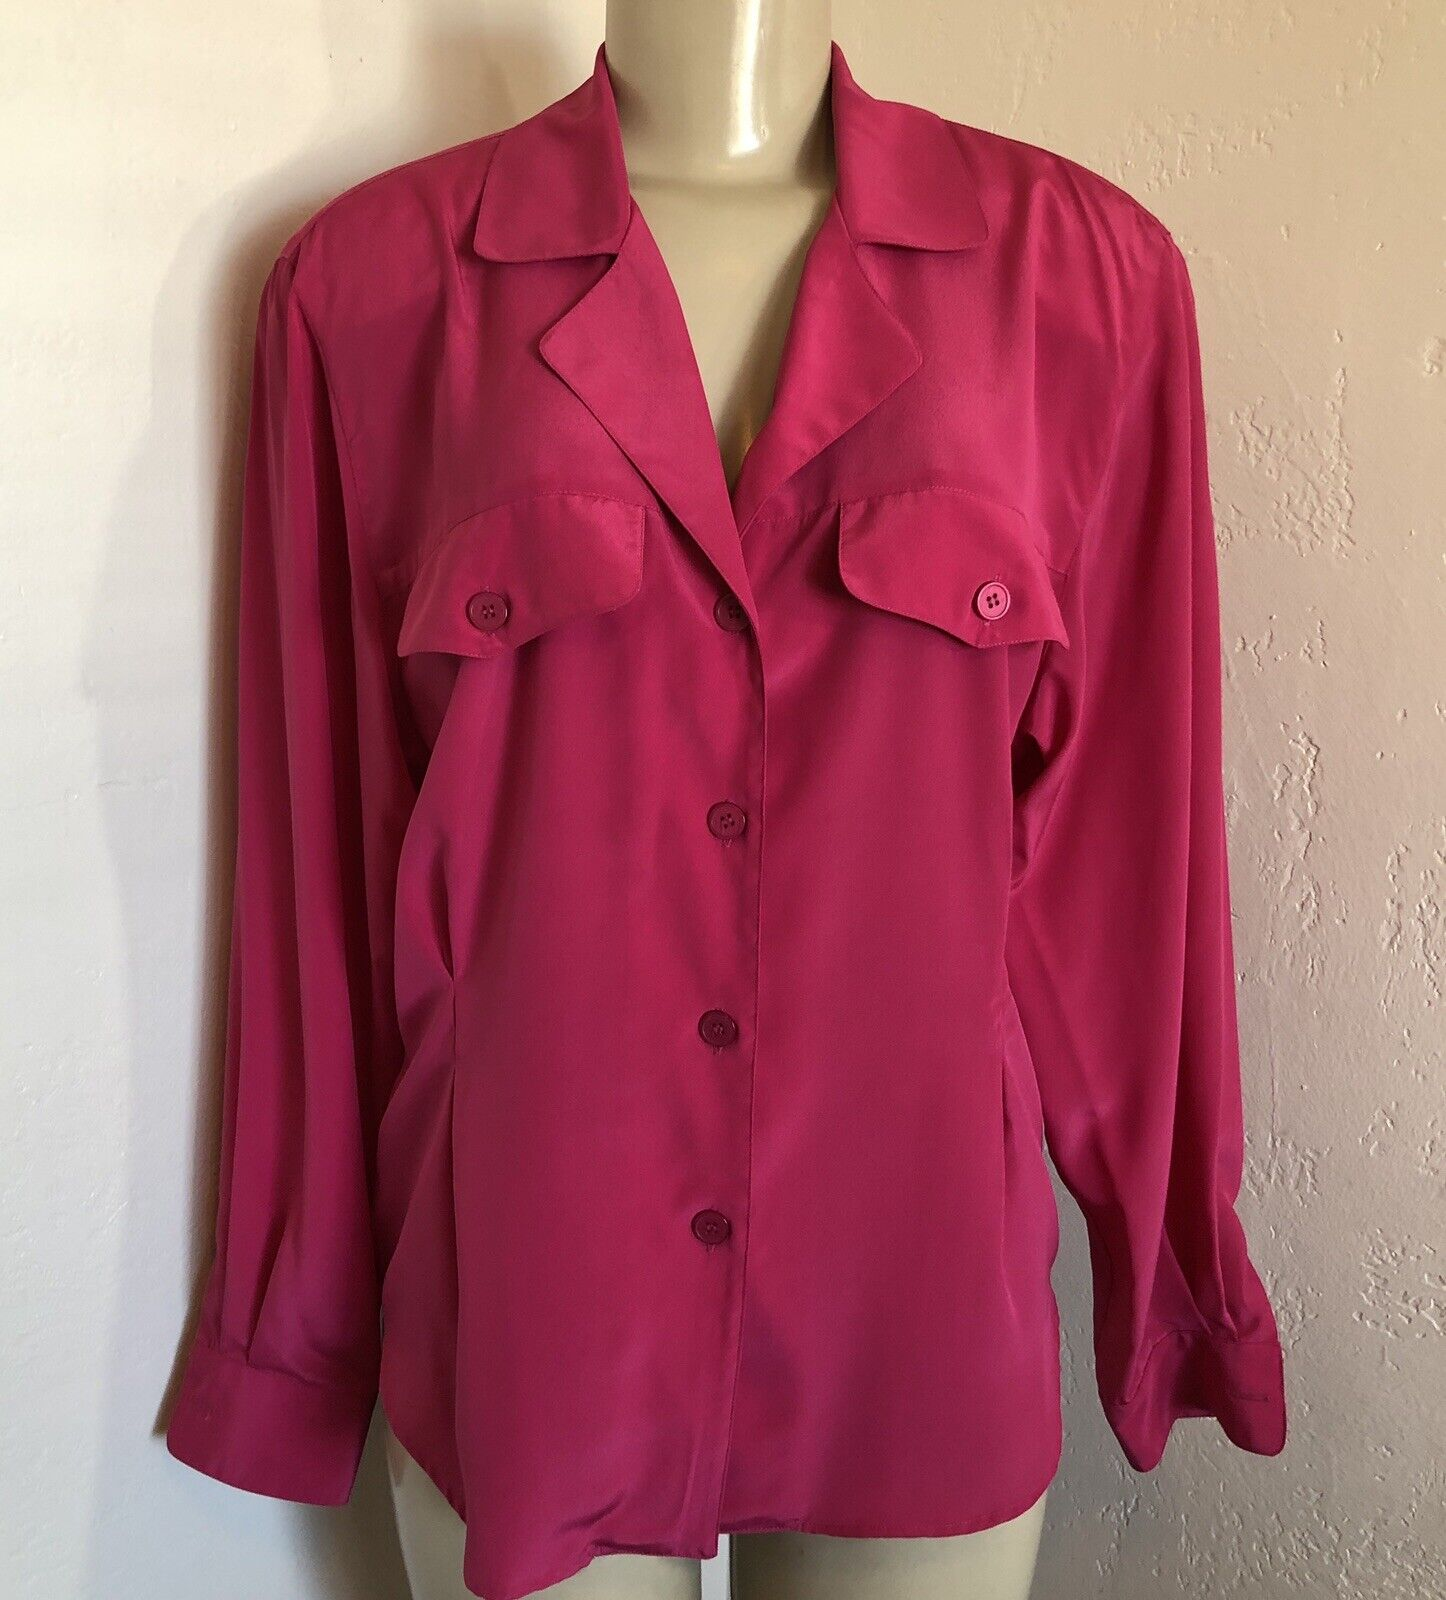 VTG Christian DIOR Chemises Blouse Sz 10 Dark Pink Poly Chiffon Blouse Fitted